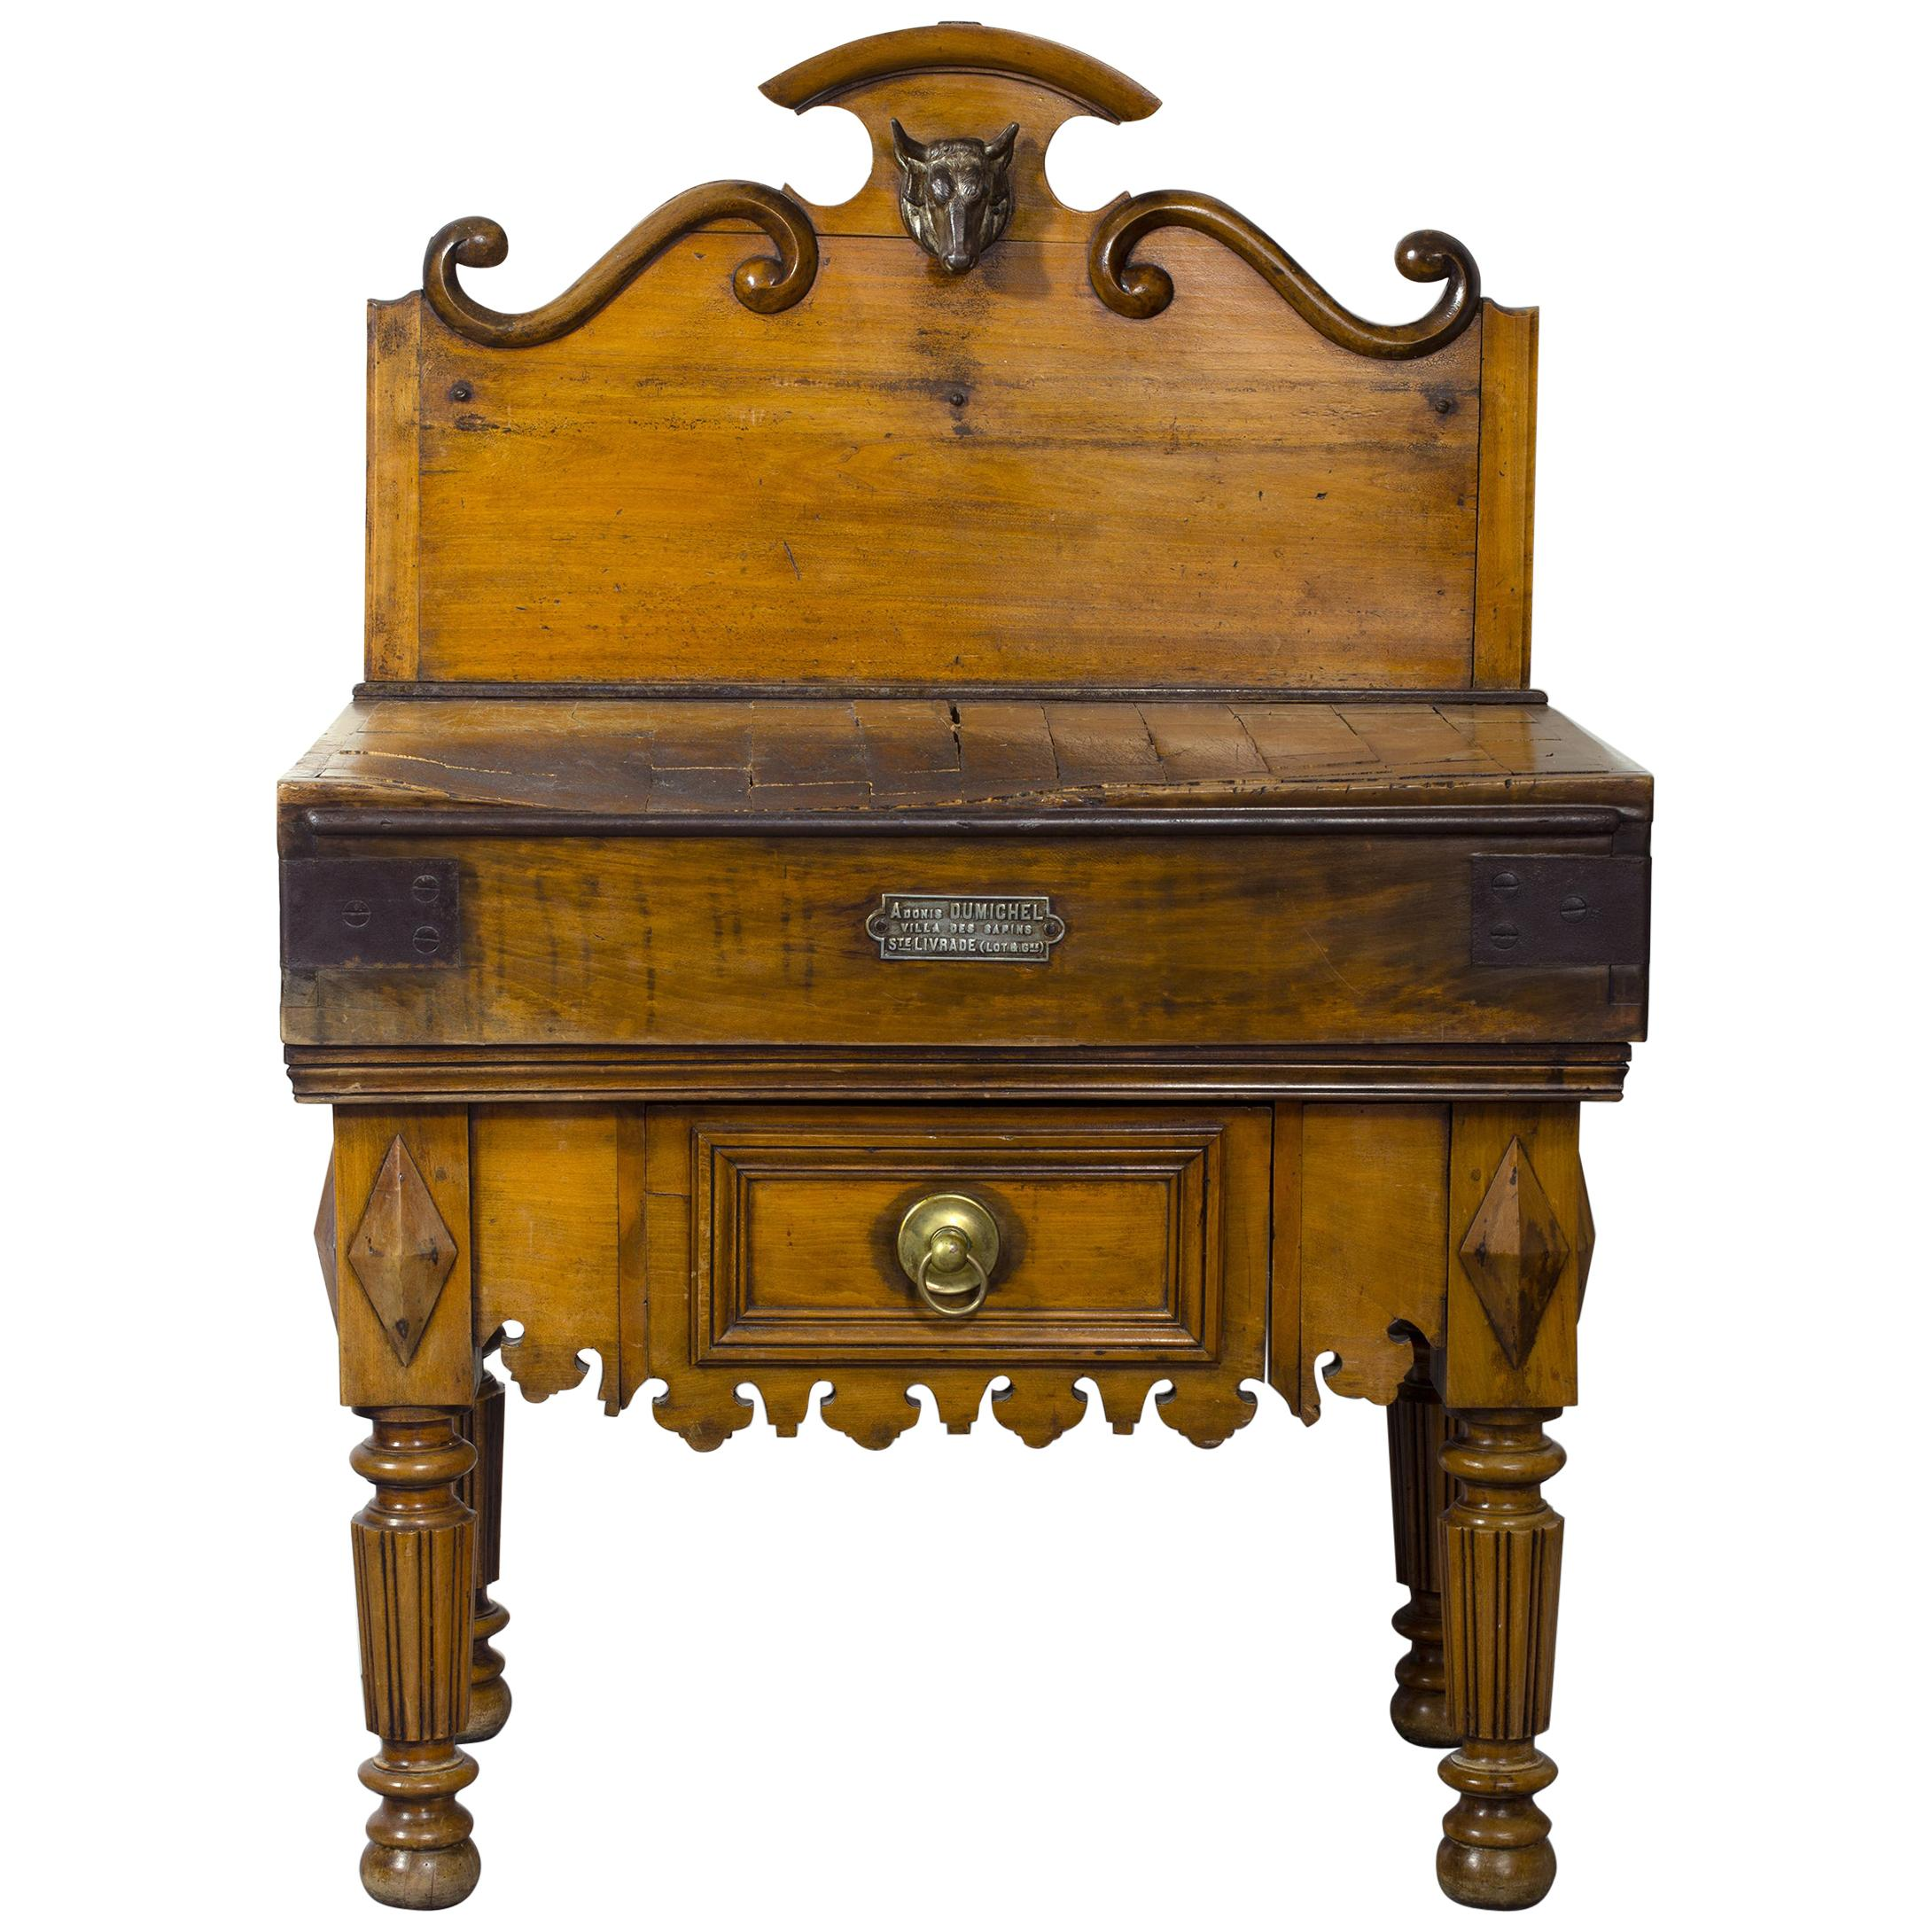 19th Century French Butcher Block with Drawer